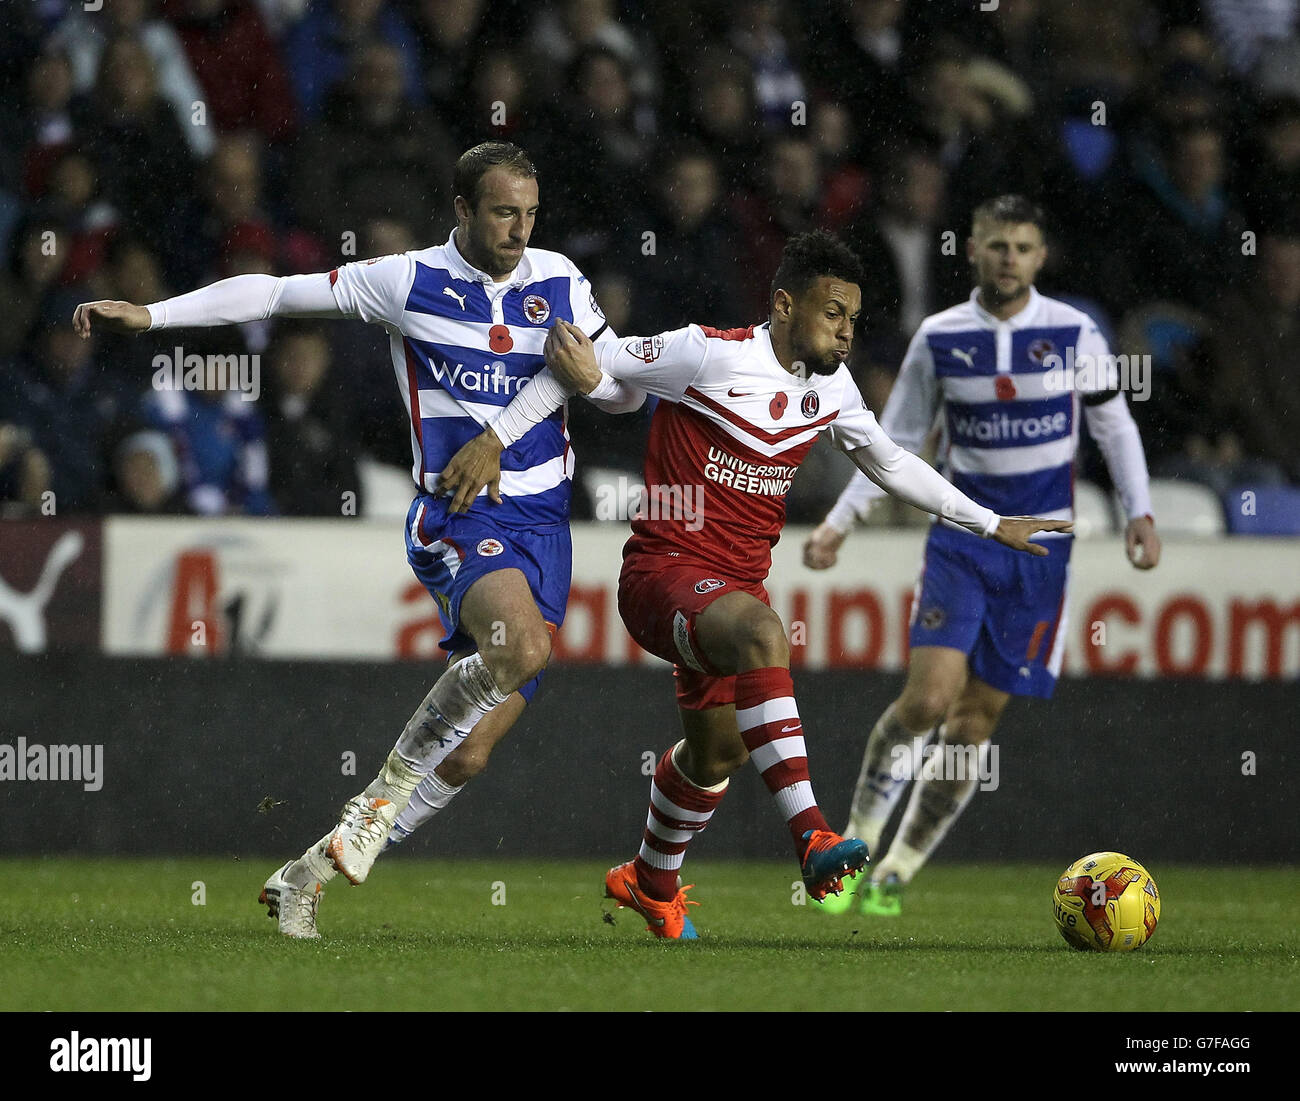 Soccer - Sky Bet Championship - Reading v Charlton Athletic - Madejski Stadium Stock Photo